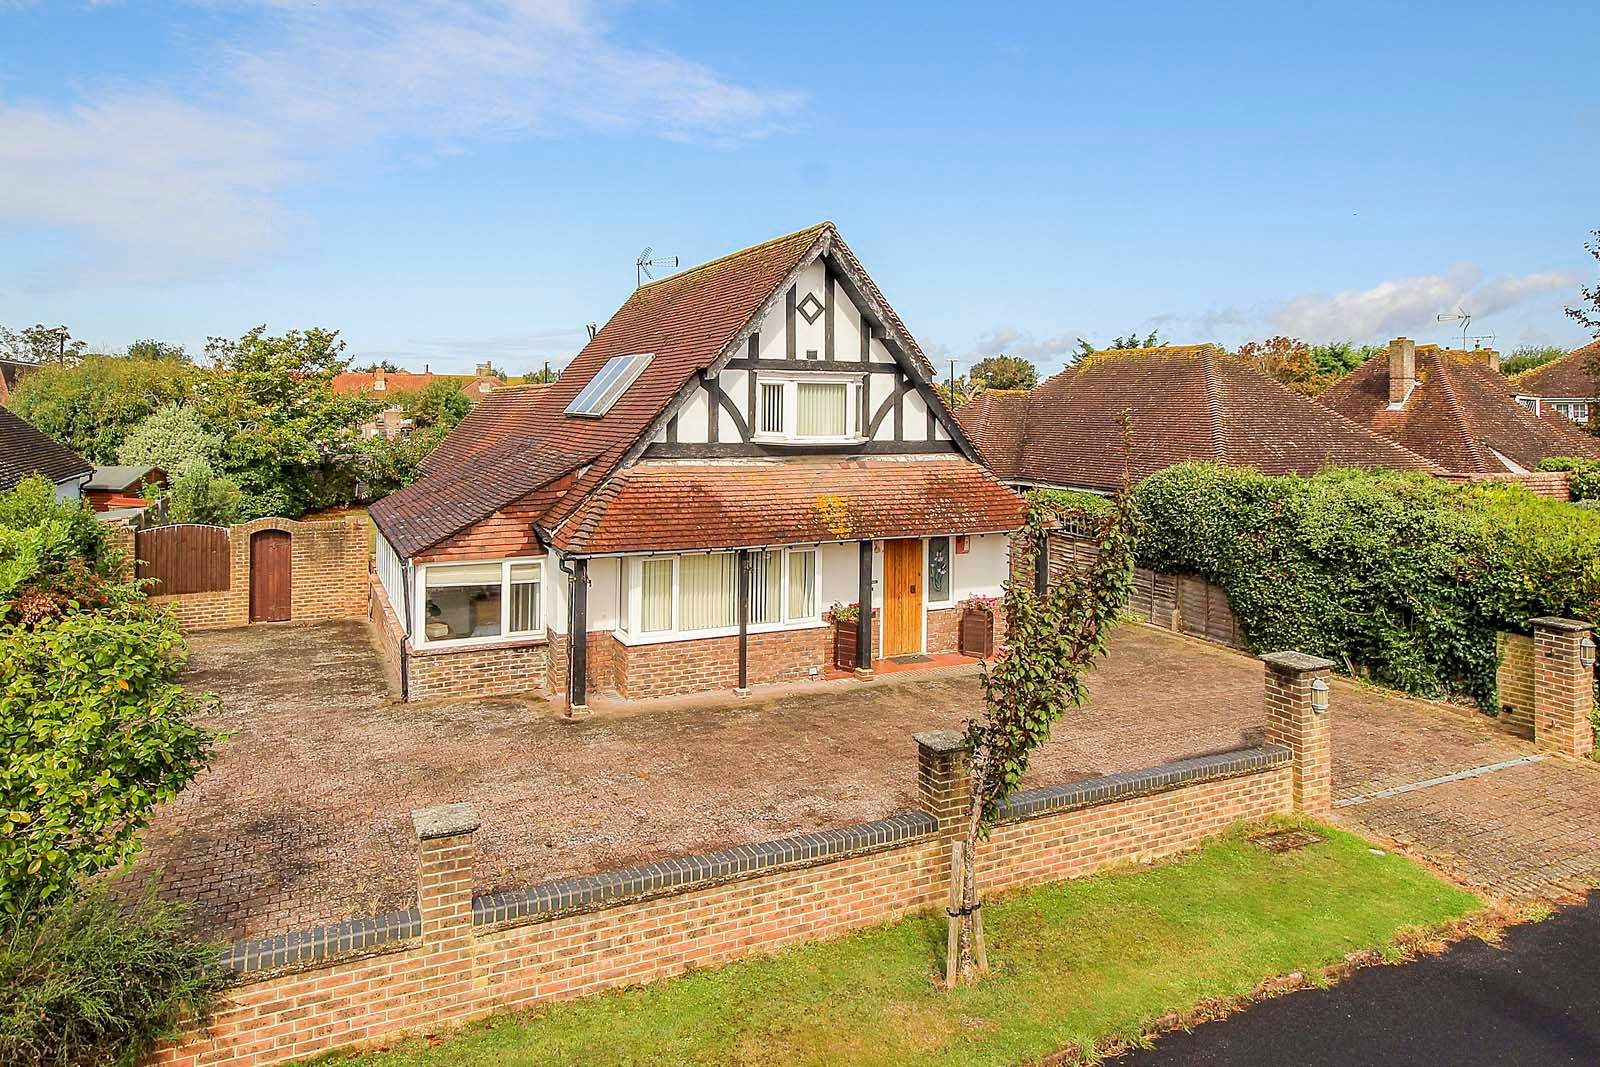 4 bed house for sale in The Bramblings - Property Image 1